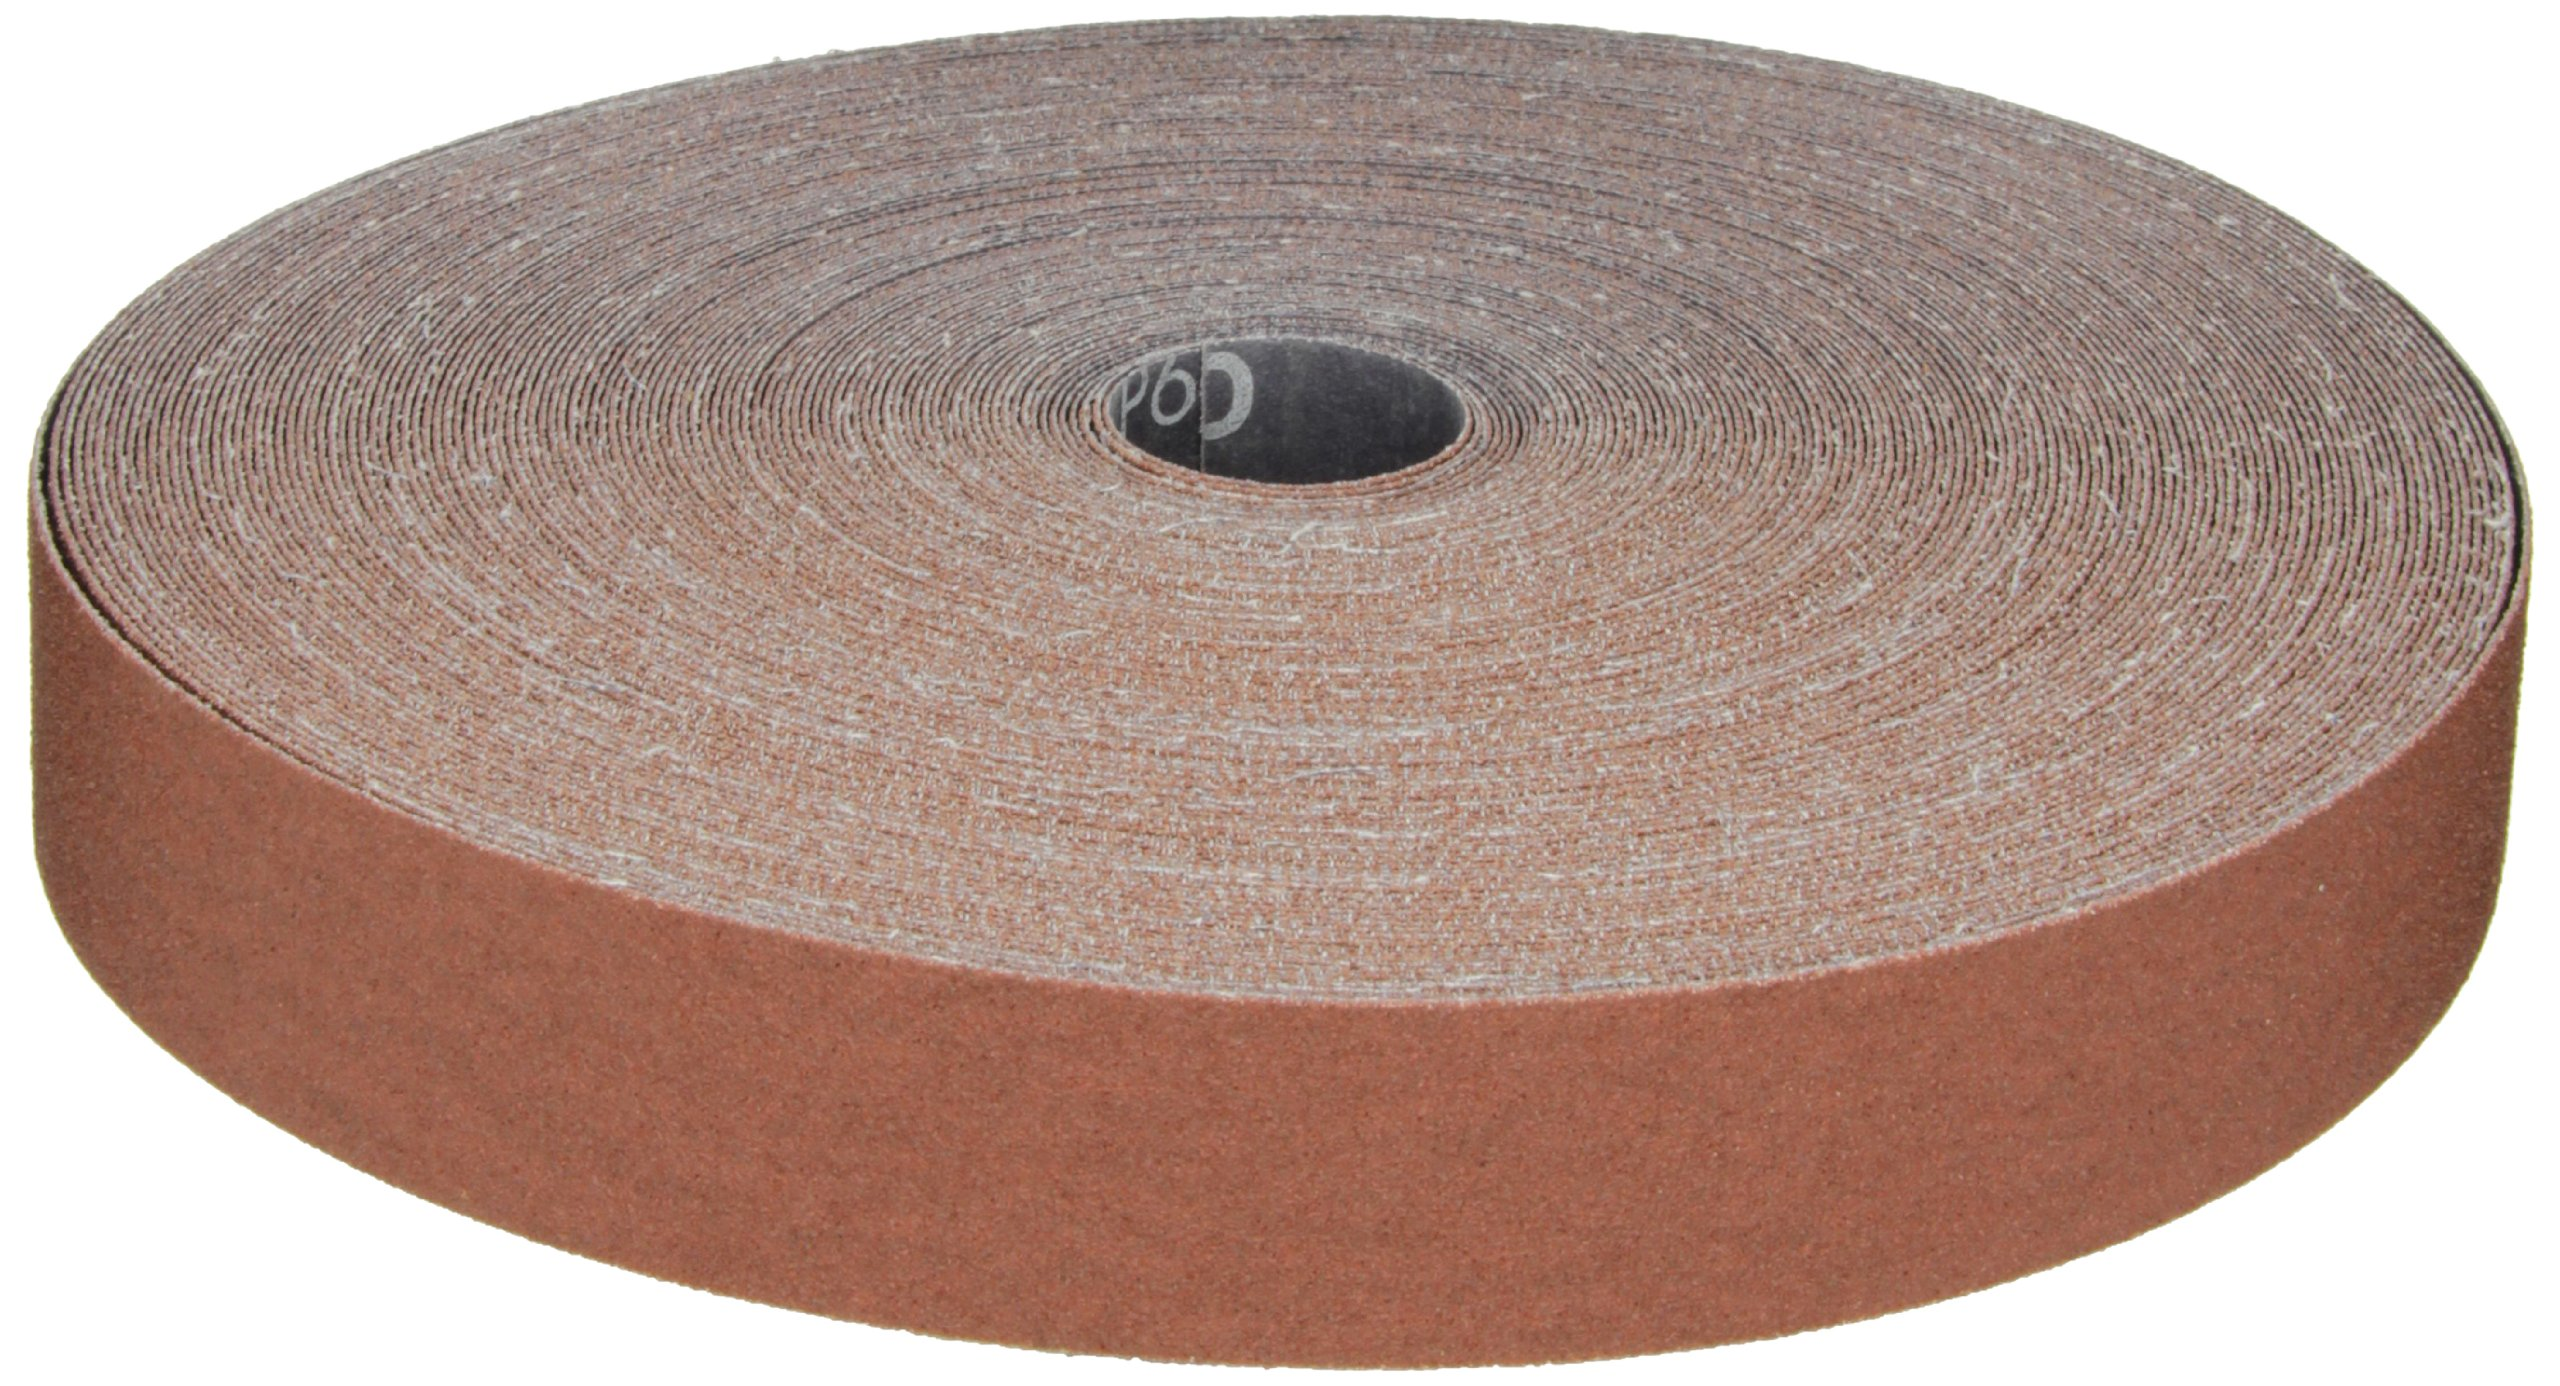 3M Utility Cloth Roll 314D, Aluminum Oxide, 1-1/2'' Width x 50 yds Length, P60 Grit, Maroon (Pack of 1)